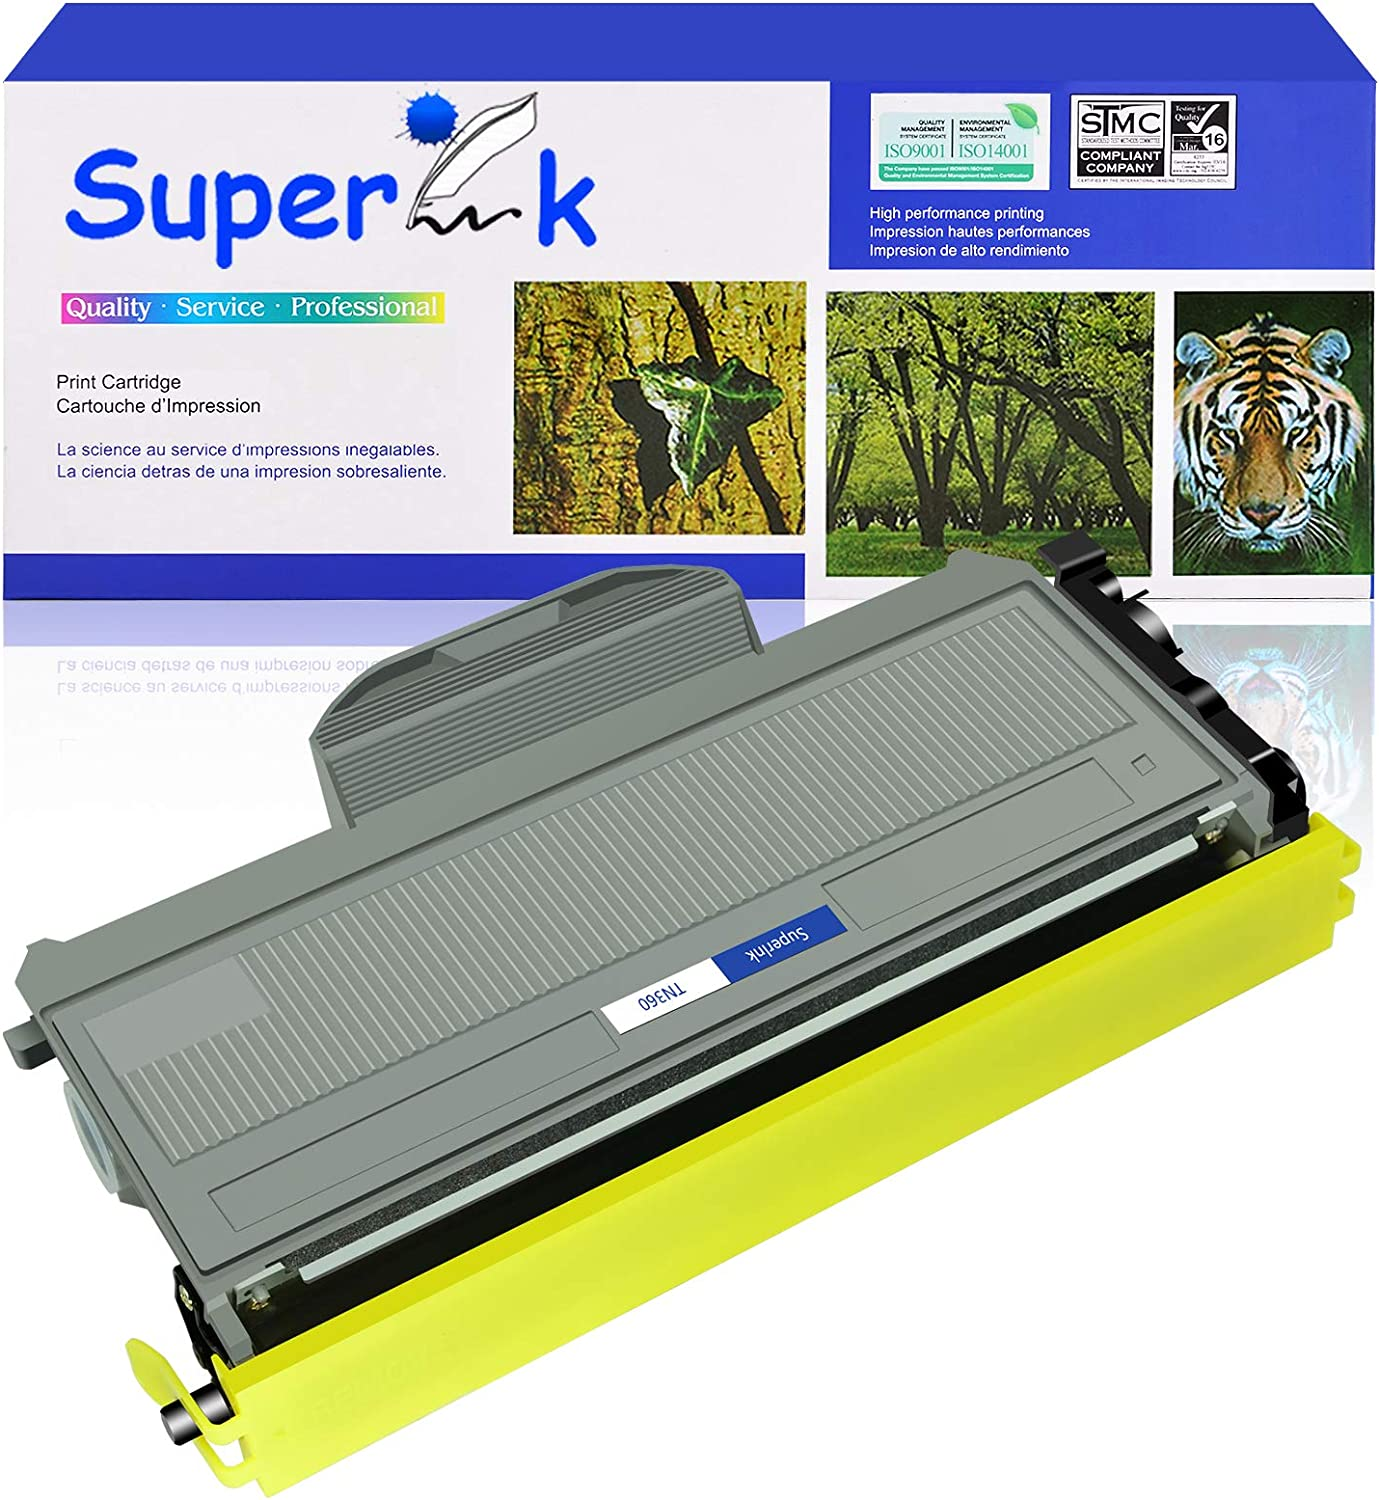 Black, 1-Pack SuperInk High Yield Compatible Toner Cartridge Replacement for Brother TN360 TN-360 TN330 TN-330 to use with HL-2170W HL-2140 DCP-7040 MFC-7840W MFC-7320 MFC-7340 MFC-7345N